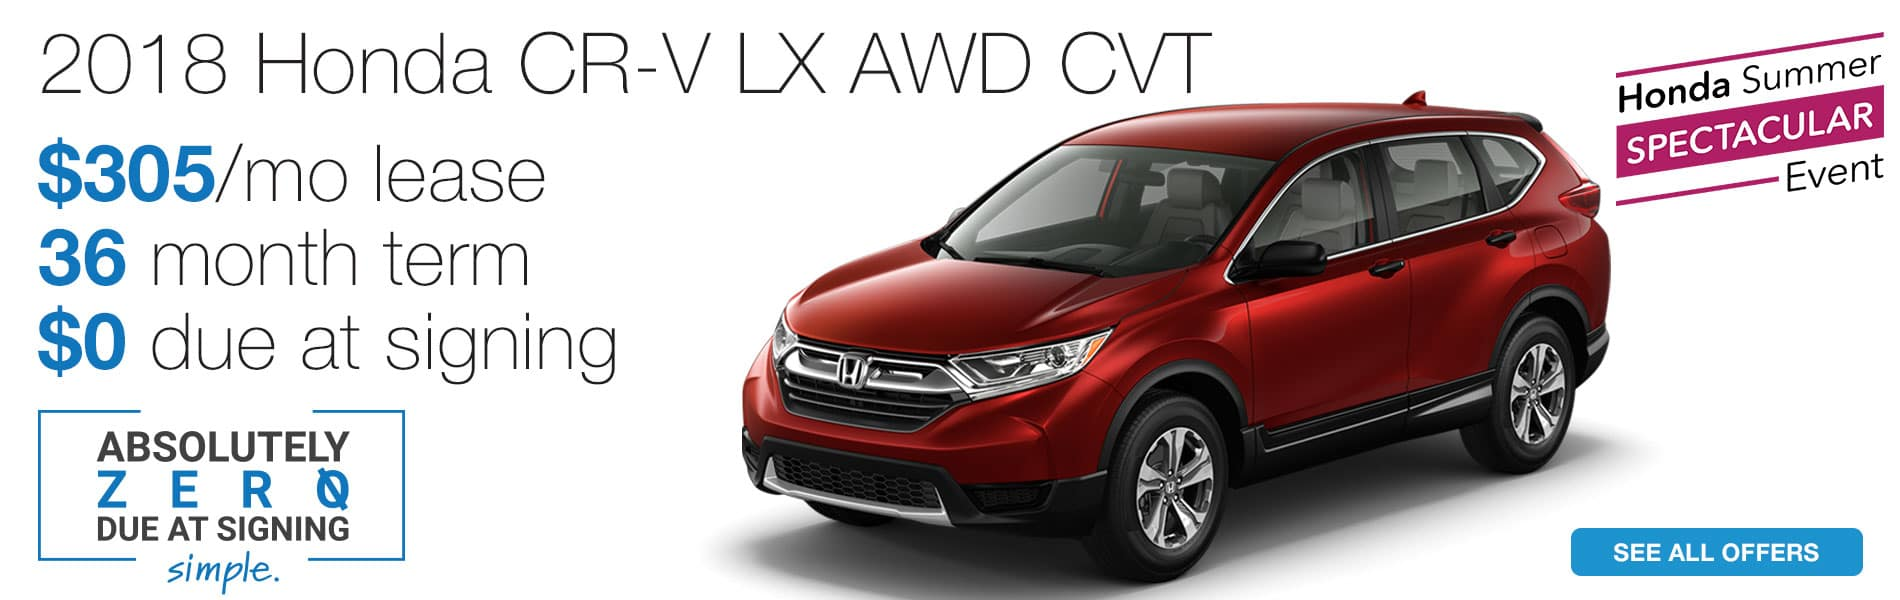 Lease a 2018 Honda CR-V LX AWD CVT for $305 per month with absolutely $0 due at signing